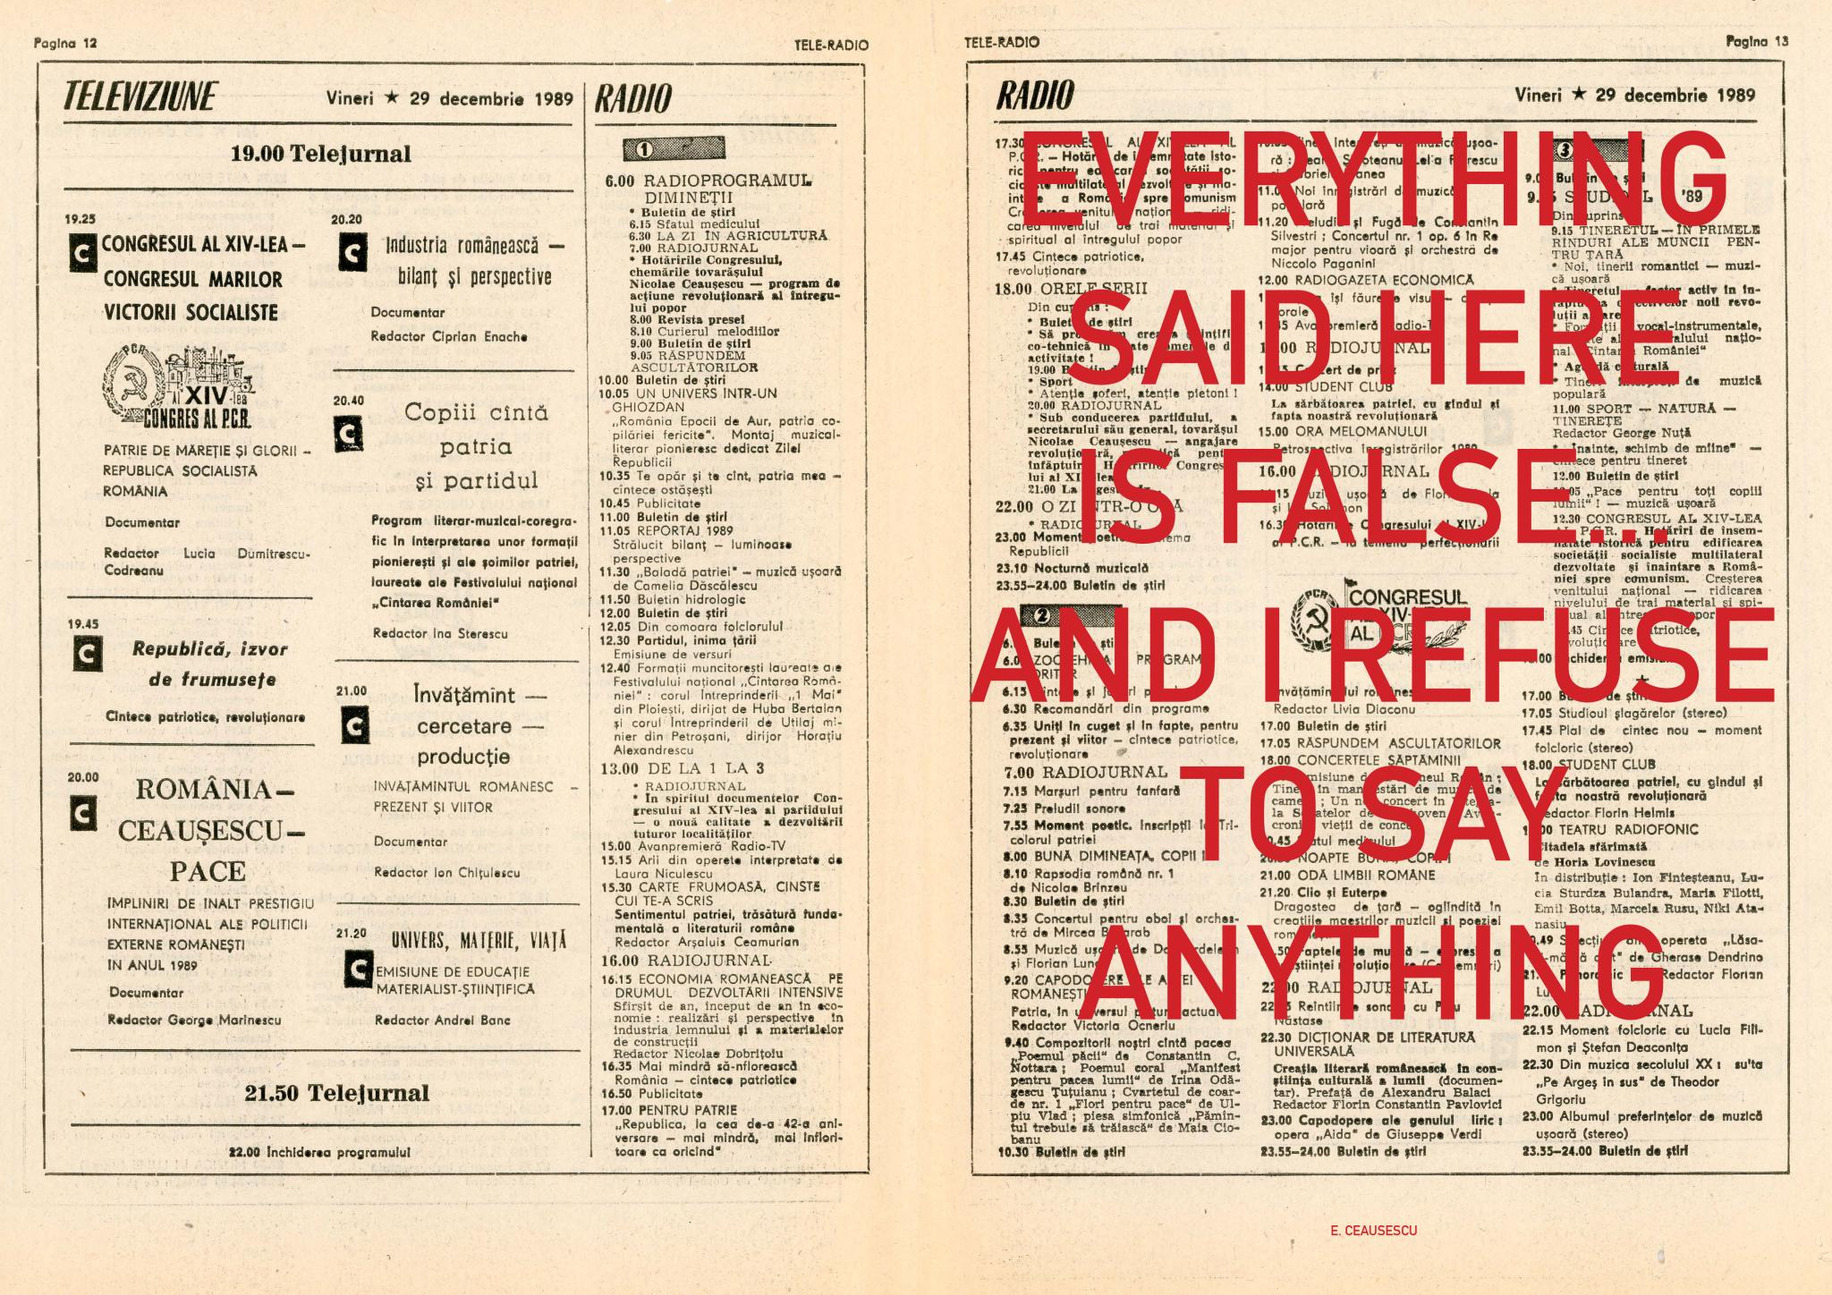 _EVERYTHING SAID HERE IS FALSE, AND I REFUSE TO SAY ANYTHING